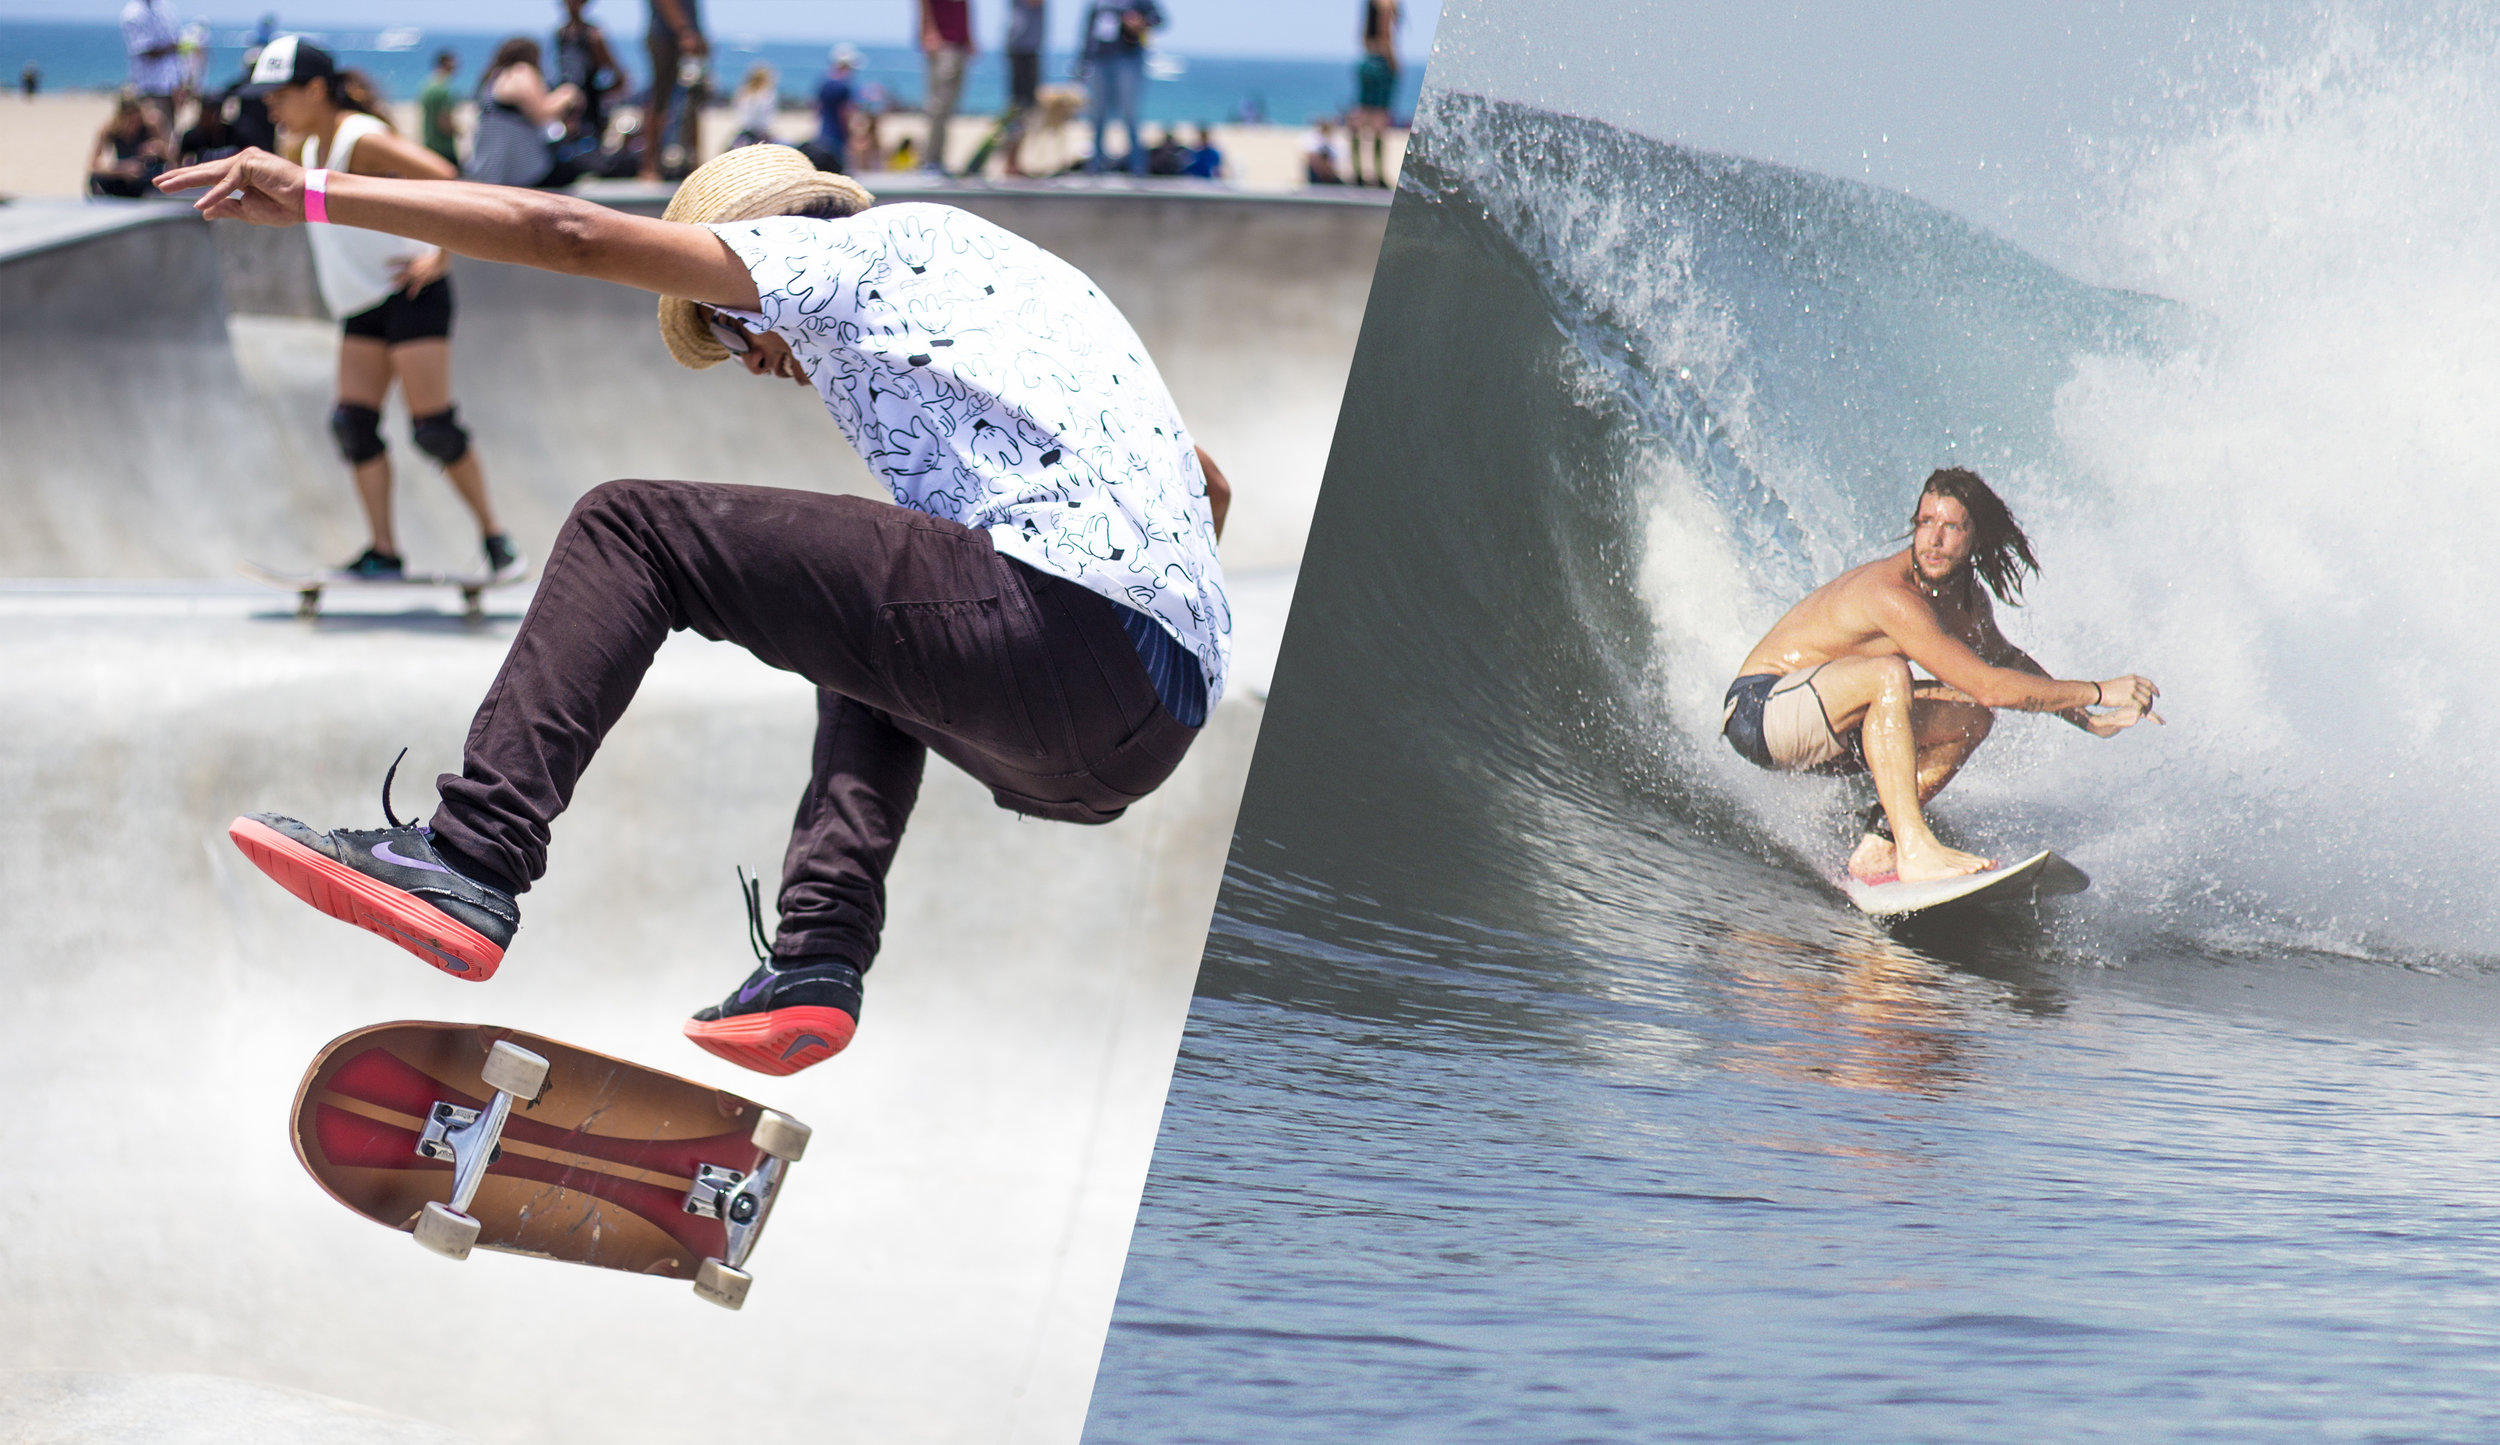 skateboard vs surf